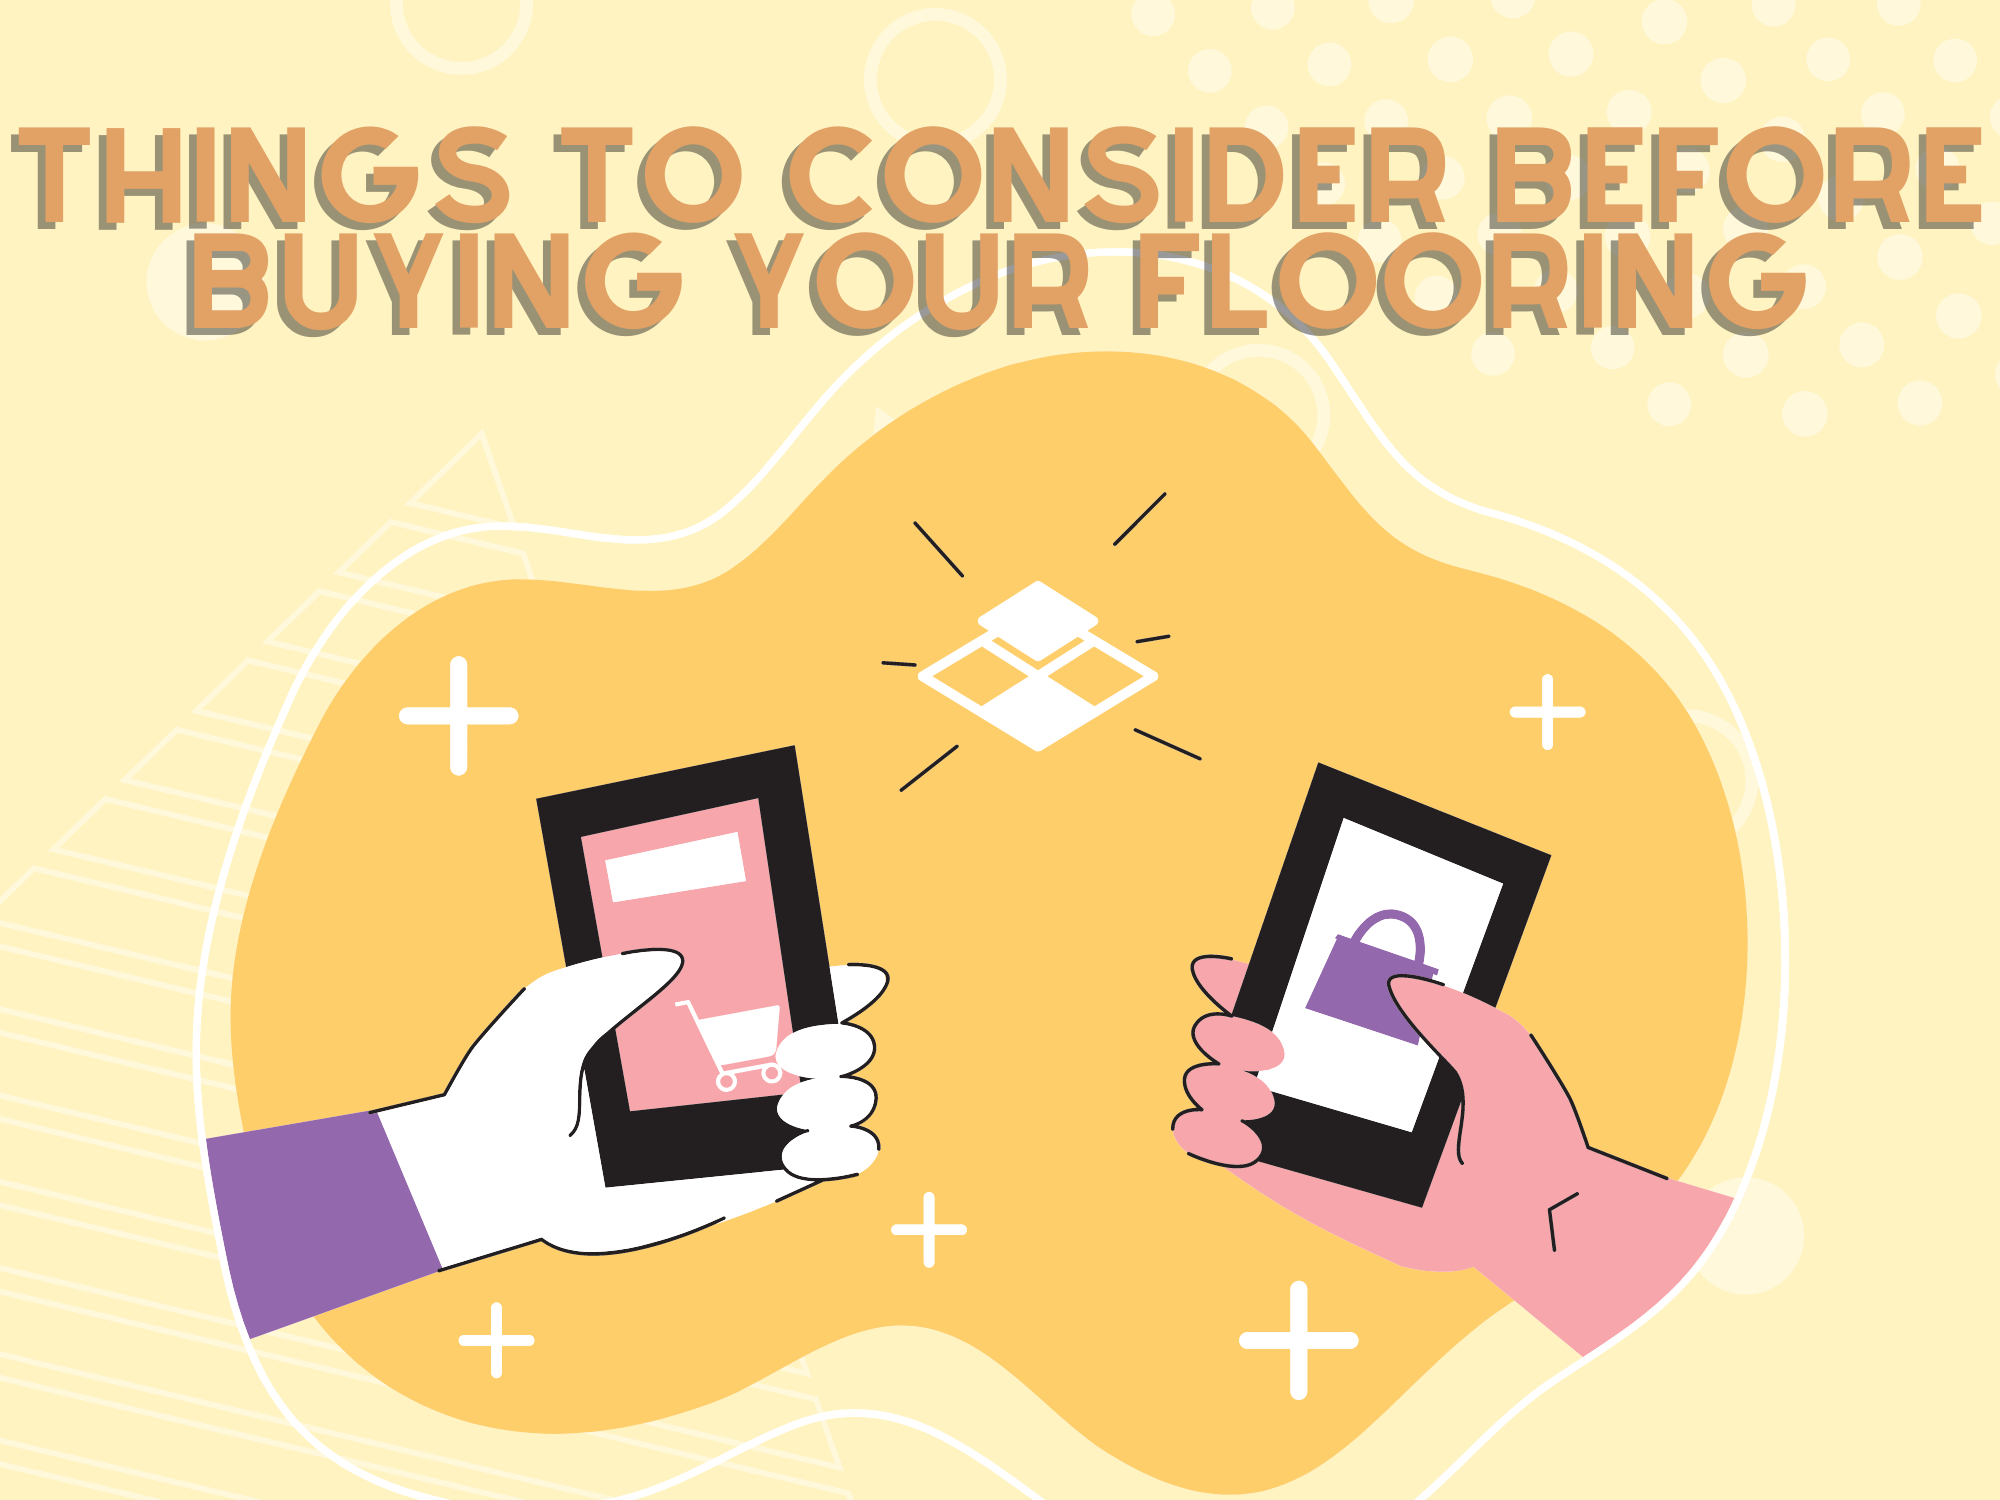 Things-to-Consider-Before-Buying-Your-Flooring